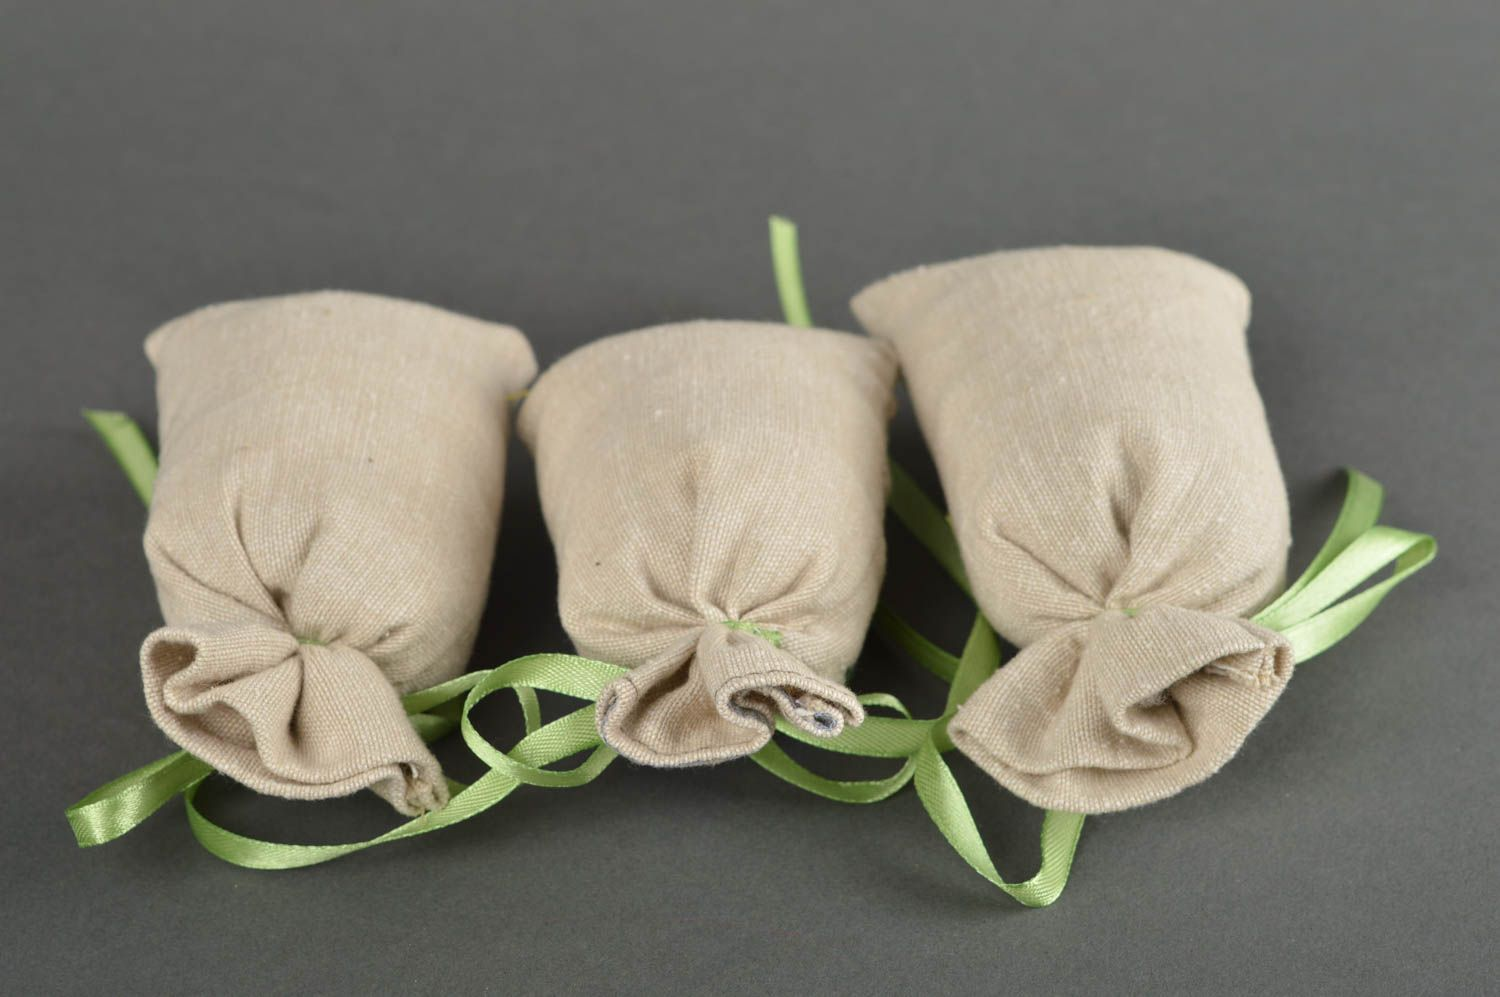 Handmade bags for aromatic sachets bags for gifts decorative use only photo 5